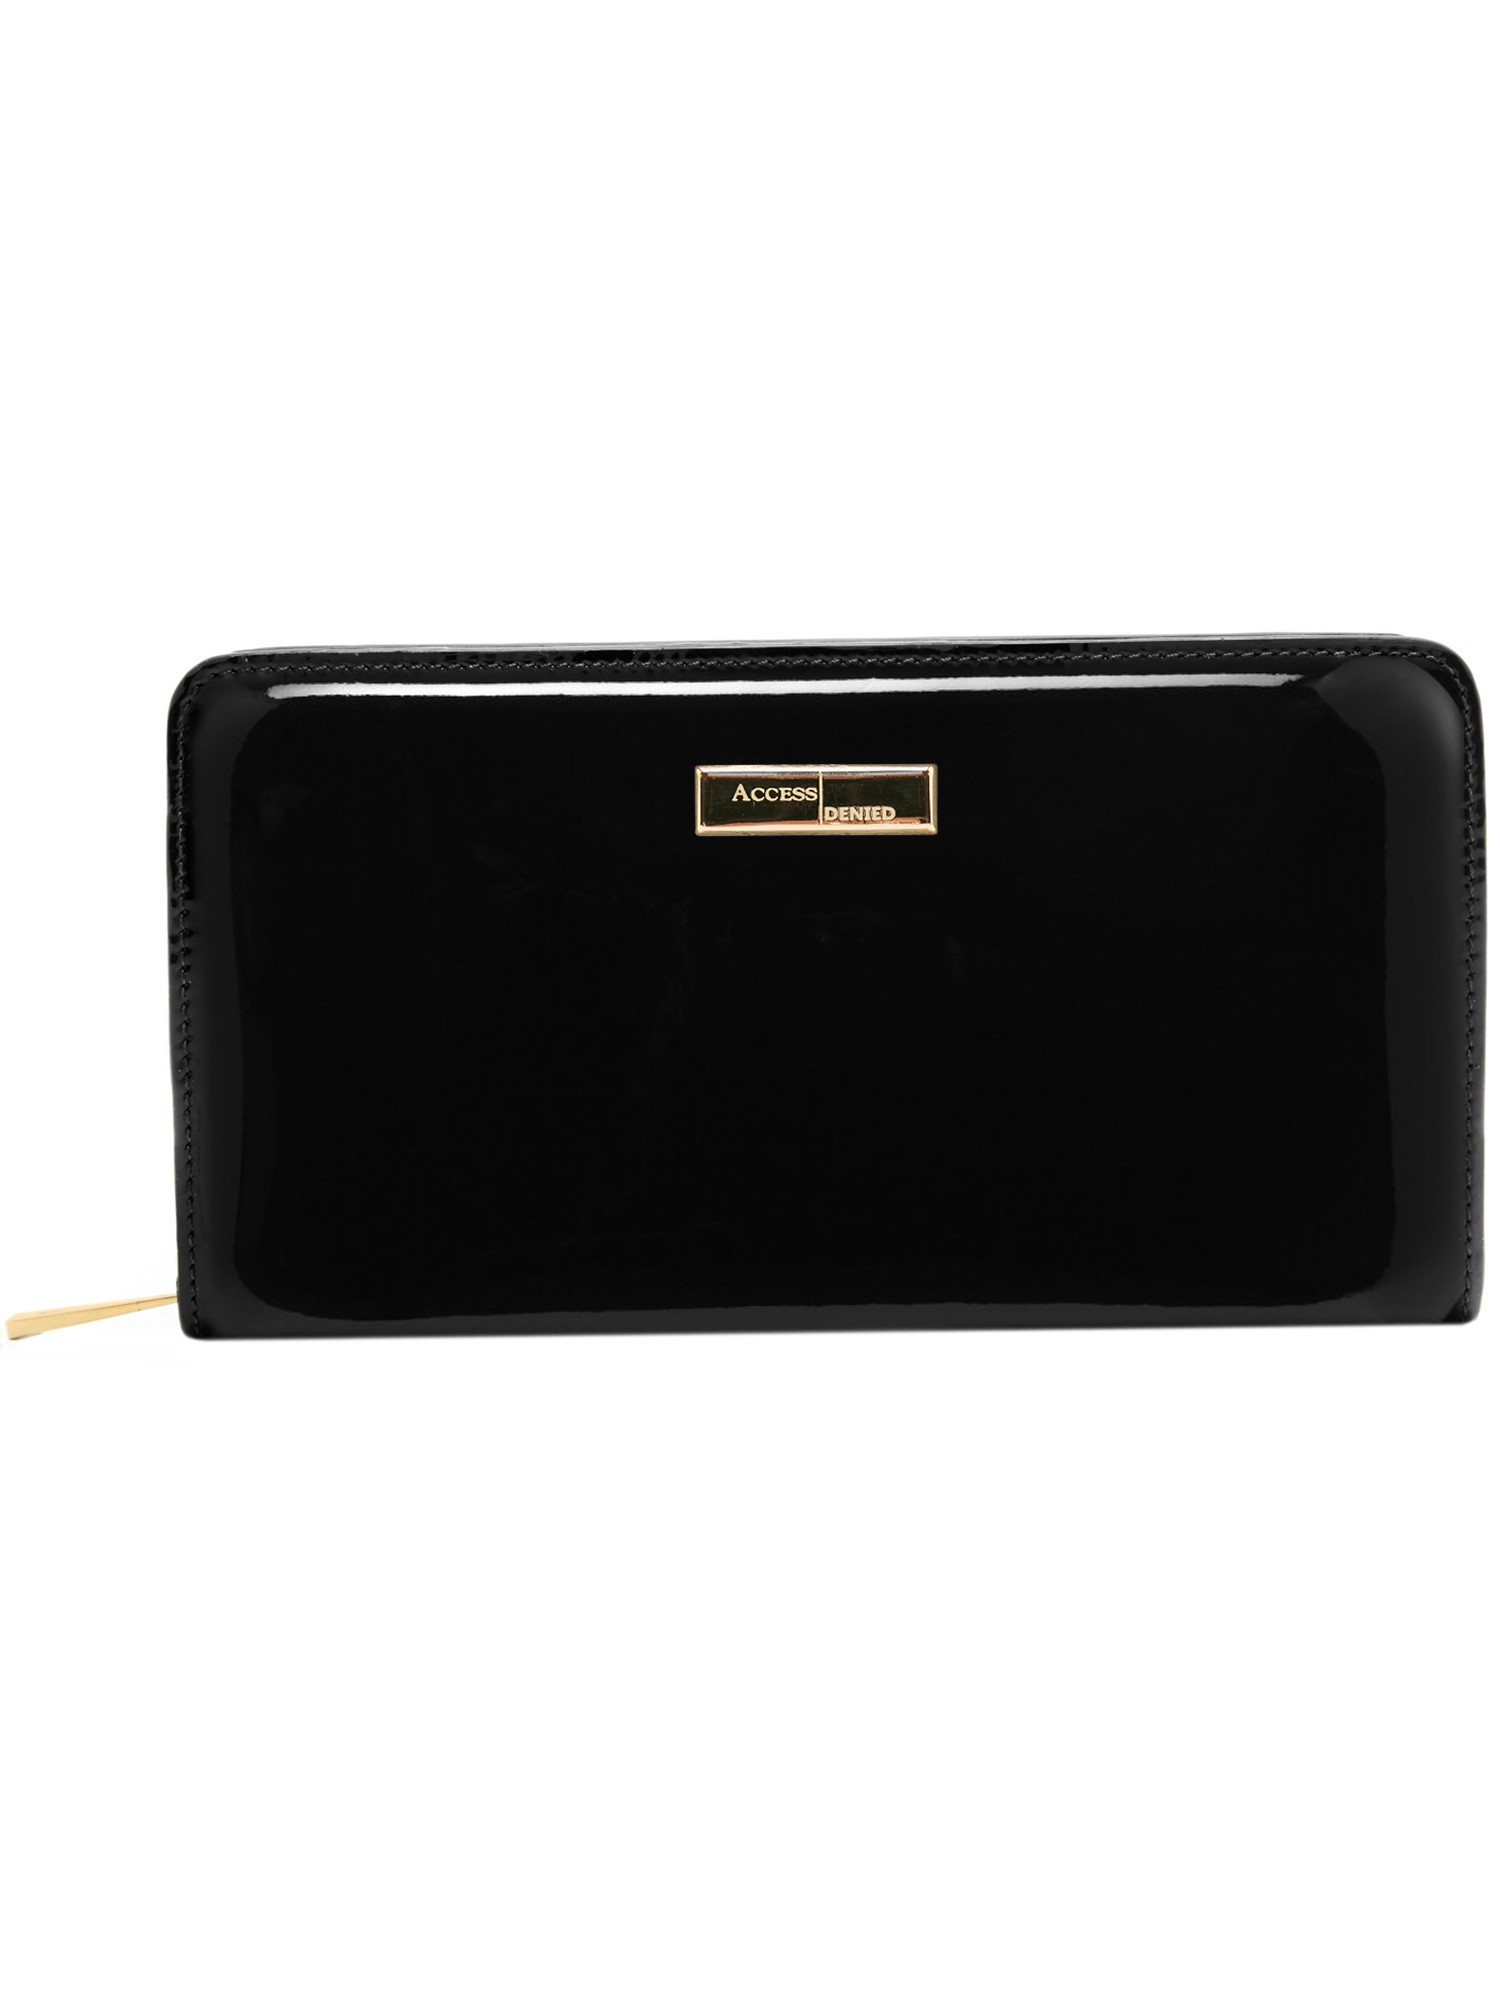 Genuine Leather Wallets For Women - Womens Ladies Clutch With Zipper RFID Blocking